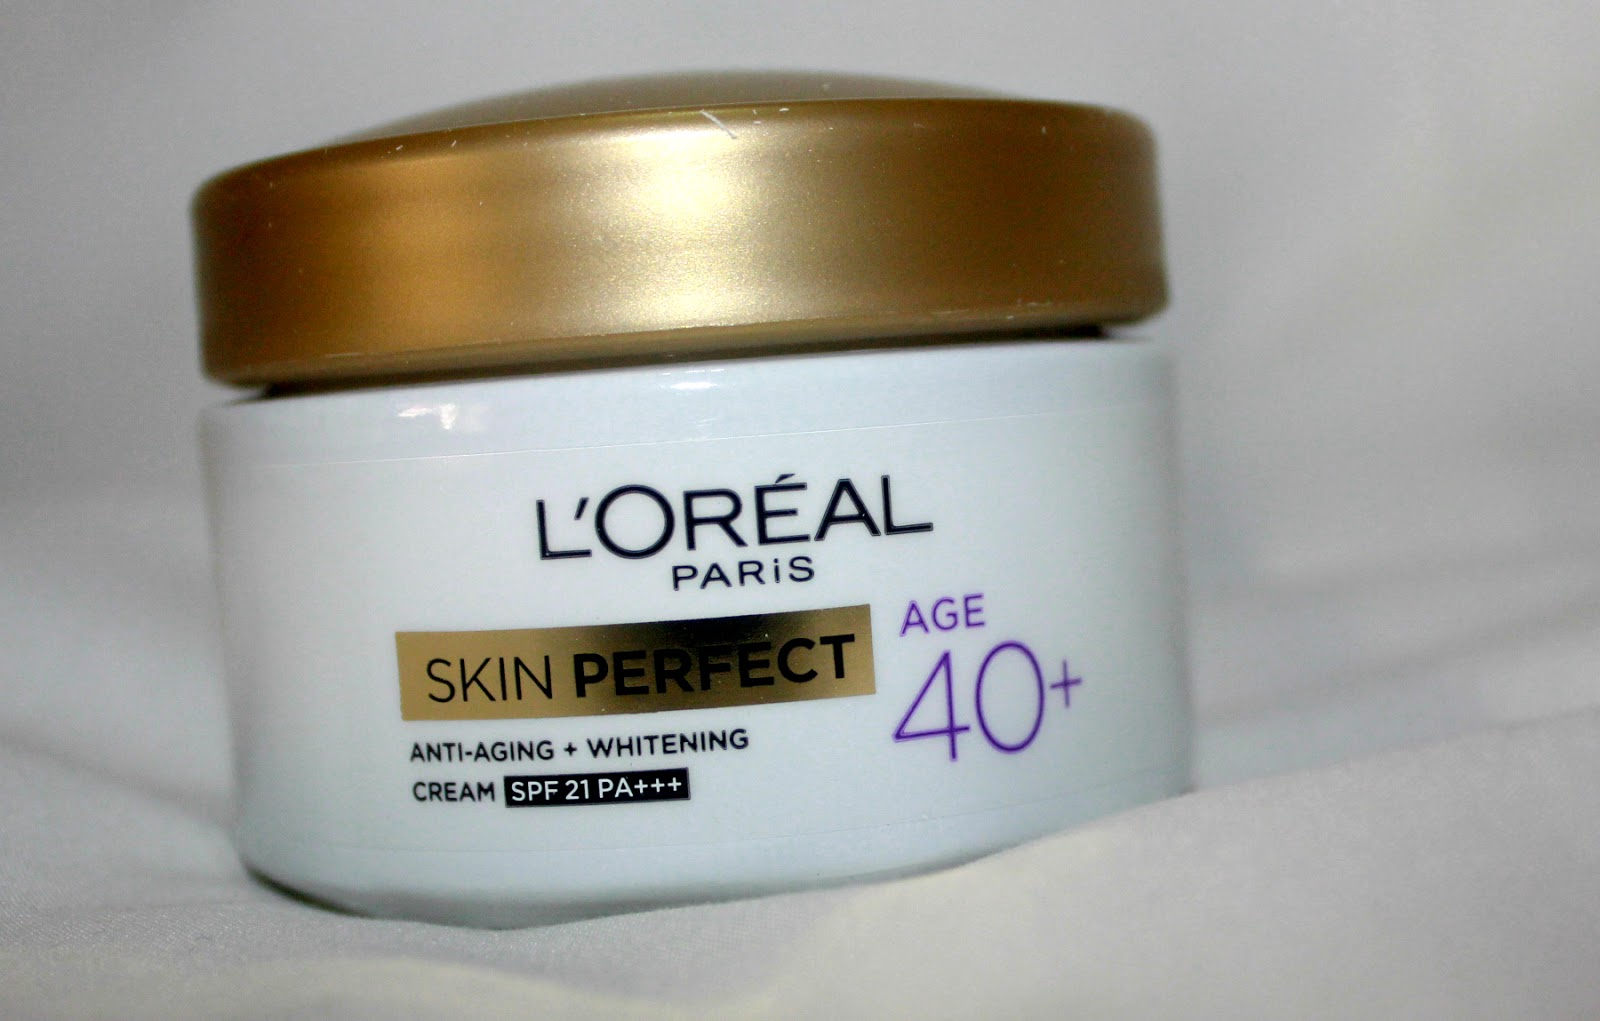 makeup review beauty blog l 39 oreal paris skin perfect anti aging whitening cream for age 40. Black Bedroom Furniture Sets. Home Design Ideas